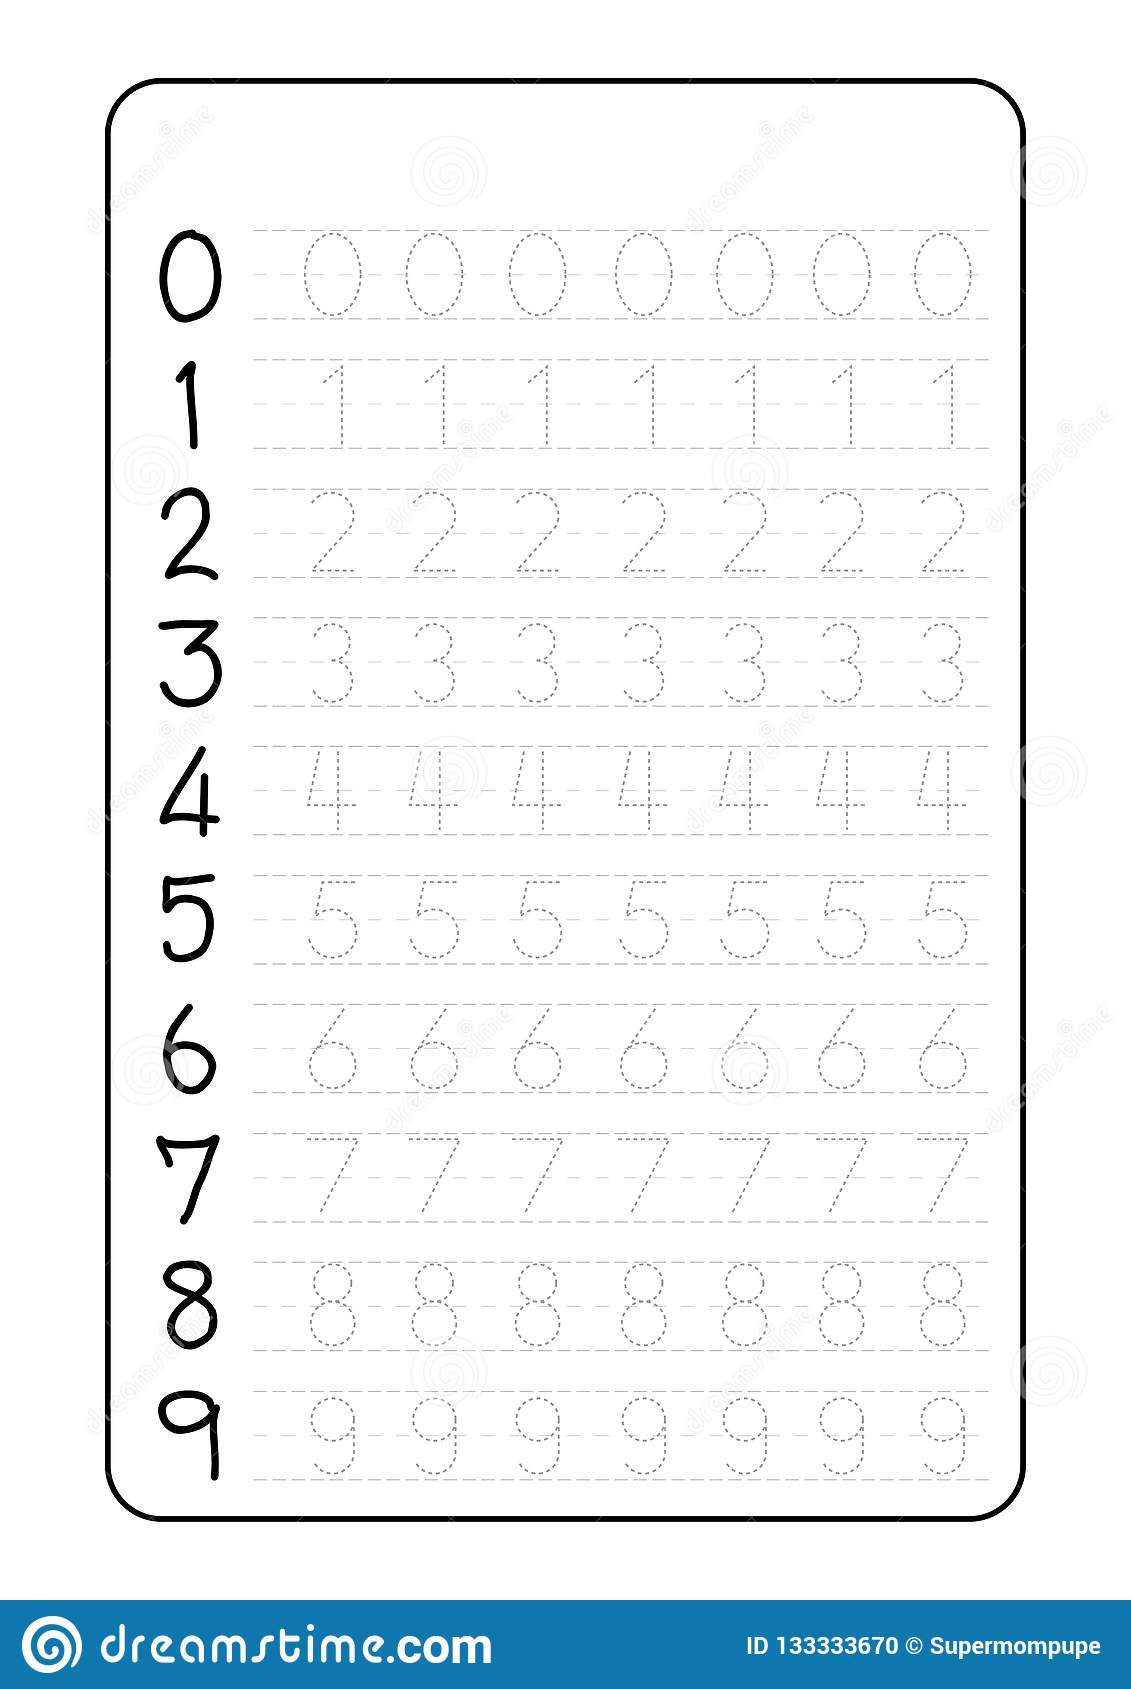 Tracing Letters And Numbers | TracingLettersWorksheets.com